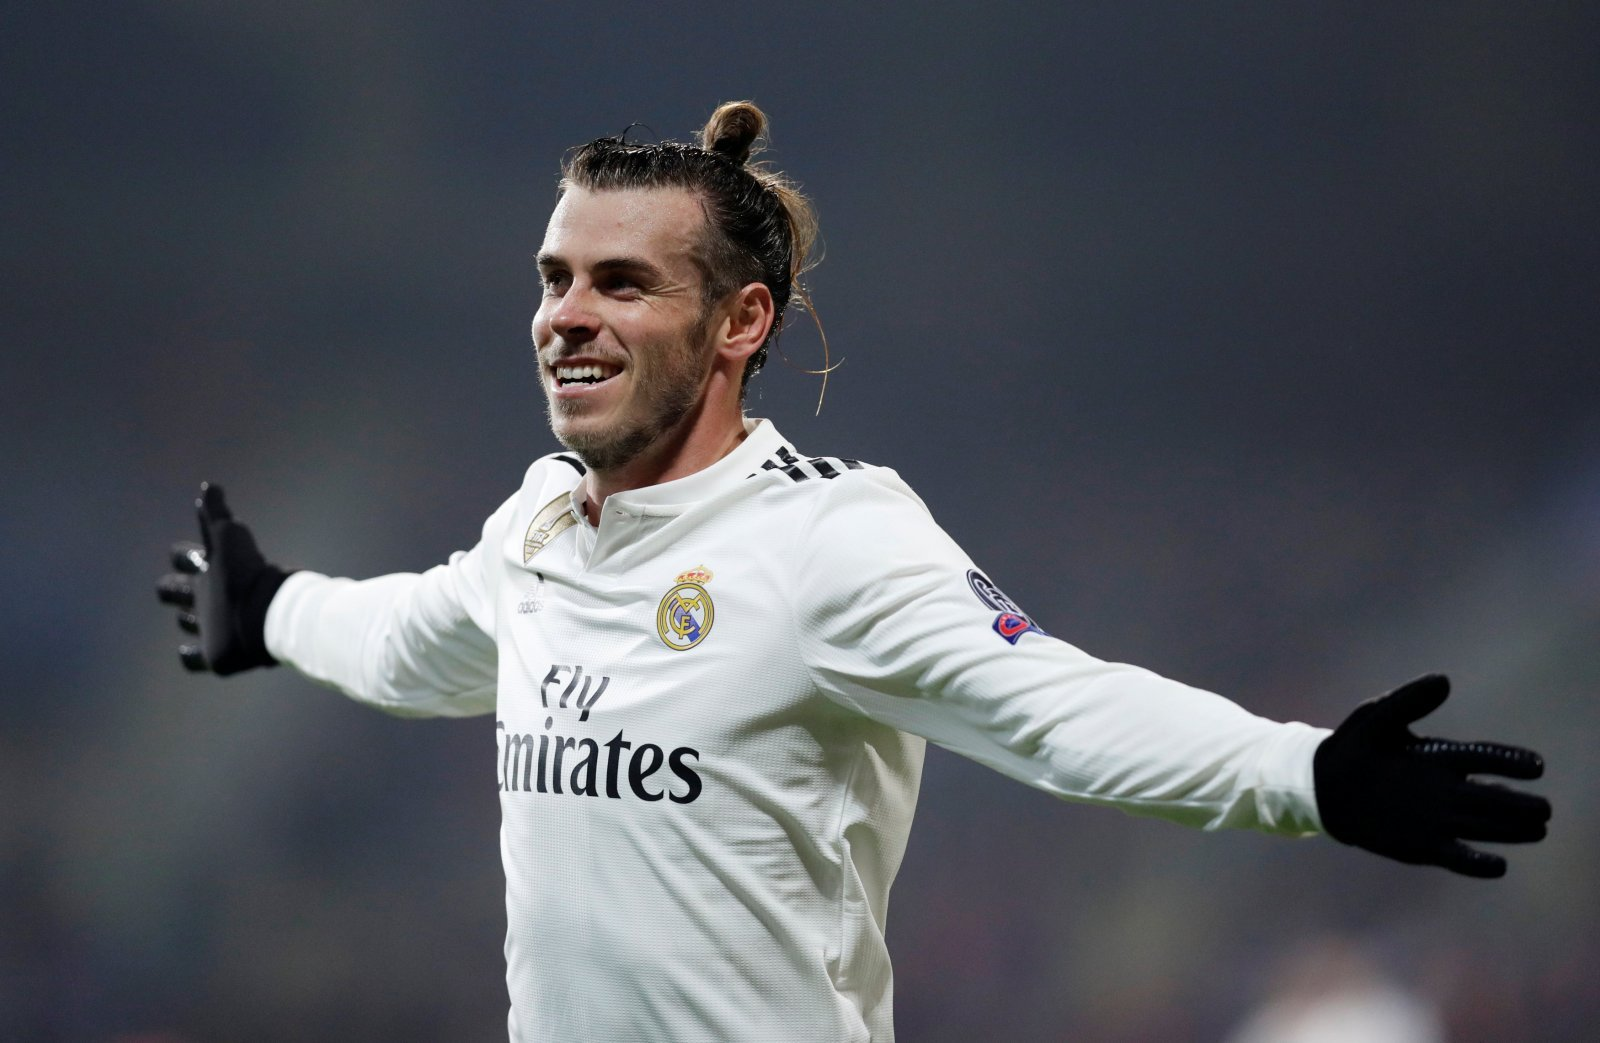 Tottenham Hotspur: Bale is an unnecessary expenditure club do not need to pay